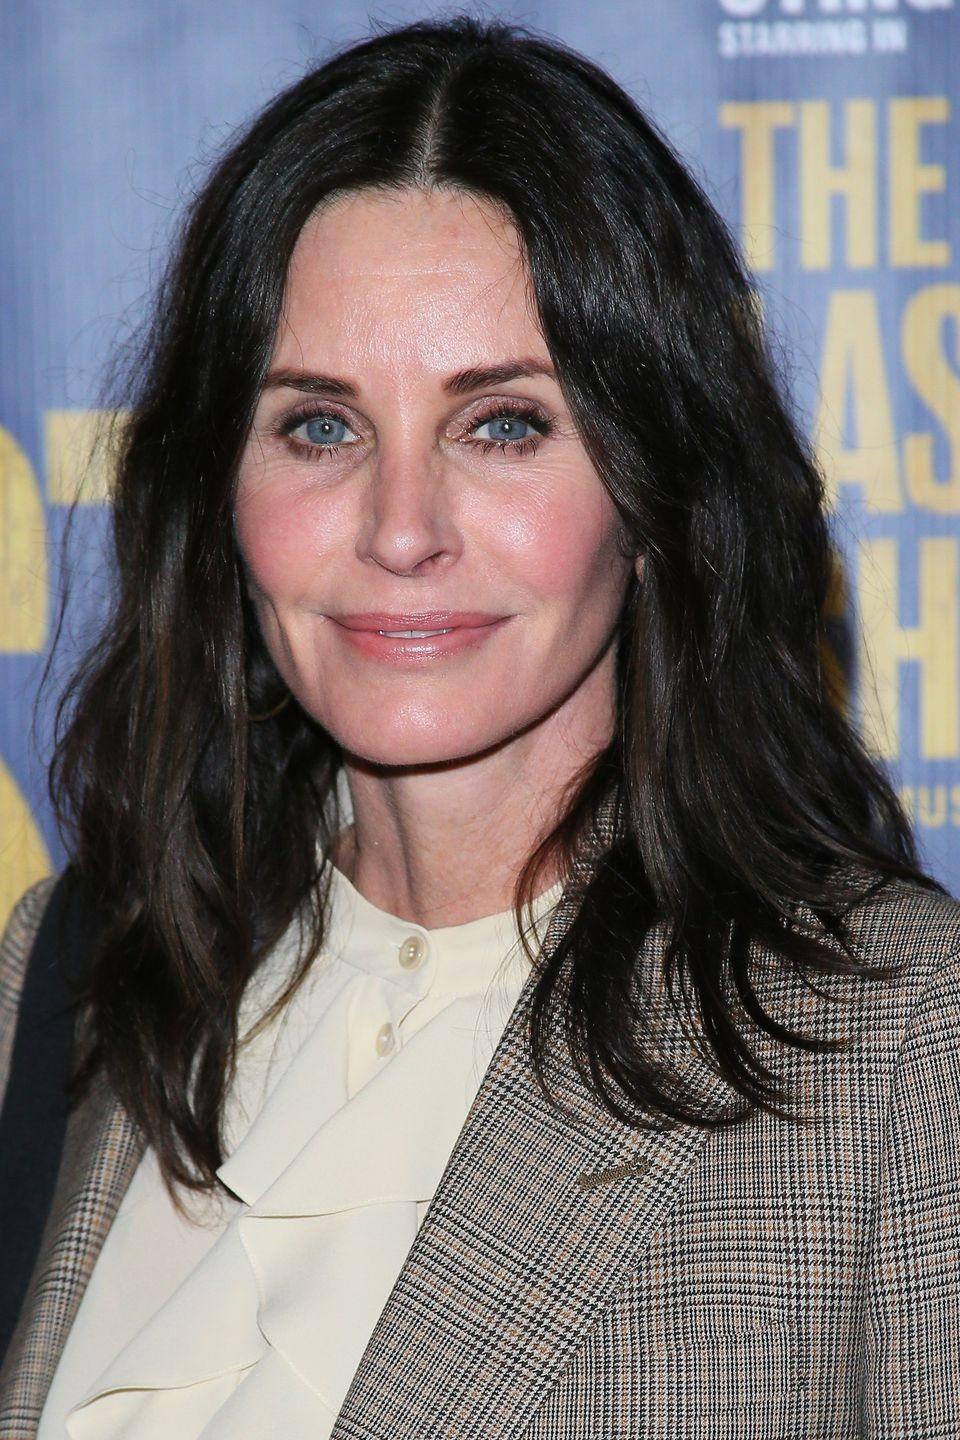 "<p>After having her fillers dissolved in 2017, Courtney Cox has learned to accept the ageing process. ""Things are going to change,"" <a href=""https://www.harpersbazaar.com/uk/beauty/skincare/news/a42256/courteney-cox-cosmetic-surgery-fillers/"" rel=""nofollow noopener"" target=""_blank"" data-ylk=""slk:she said"" class=""link rapid-noclick-resp"">she said</a>. ""I was trying to make [my face] not drop, but that made me look fake. I've had to learn to embrace movement and realise that fillers are not my friend.""</p>"